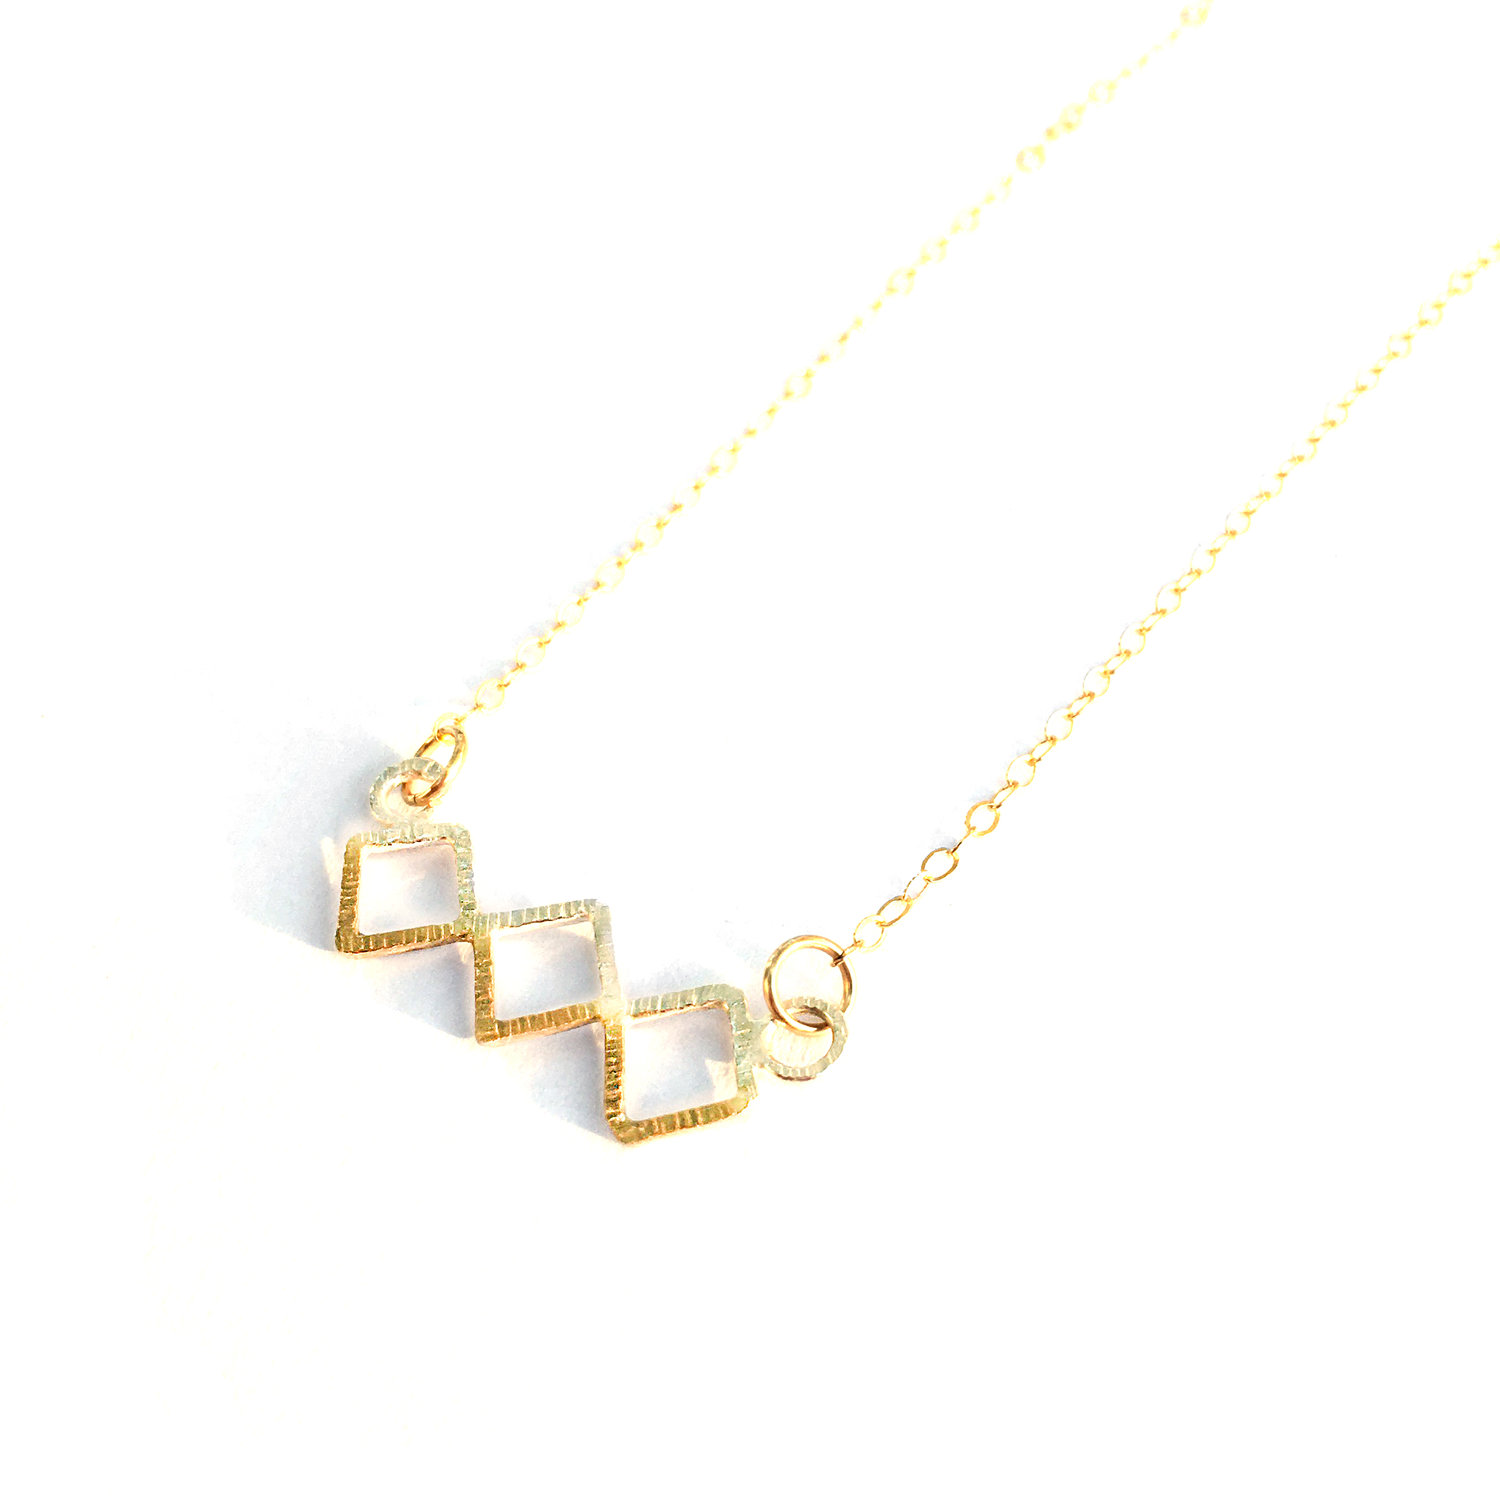 yg square collections yellow gold vous jewellery latest fv fabuleux lacey fasion necklace products